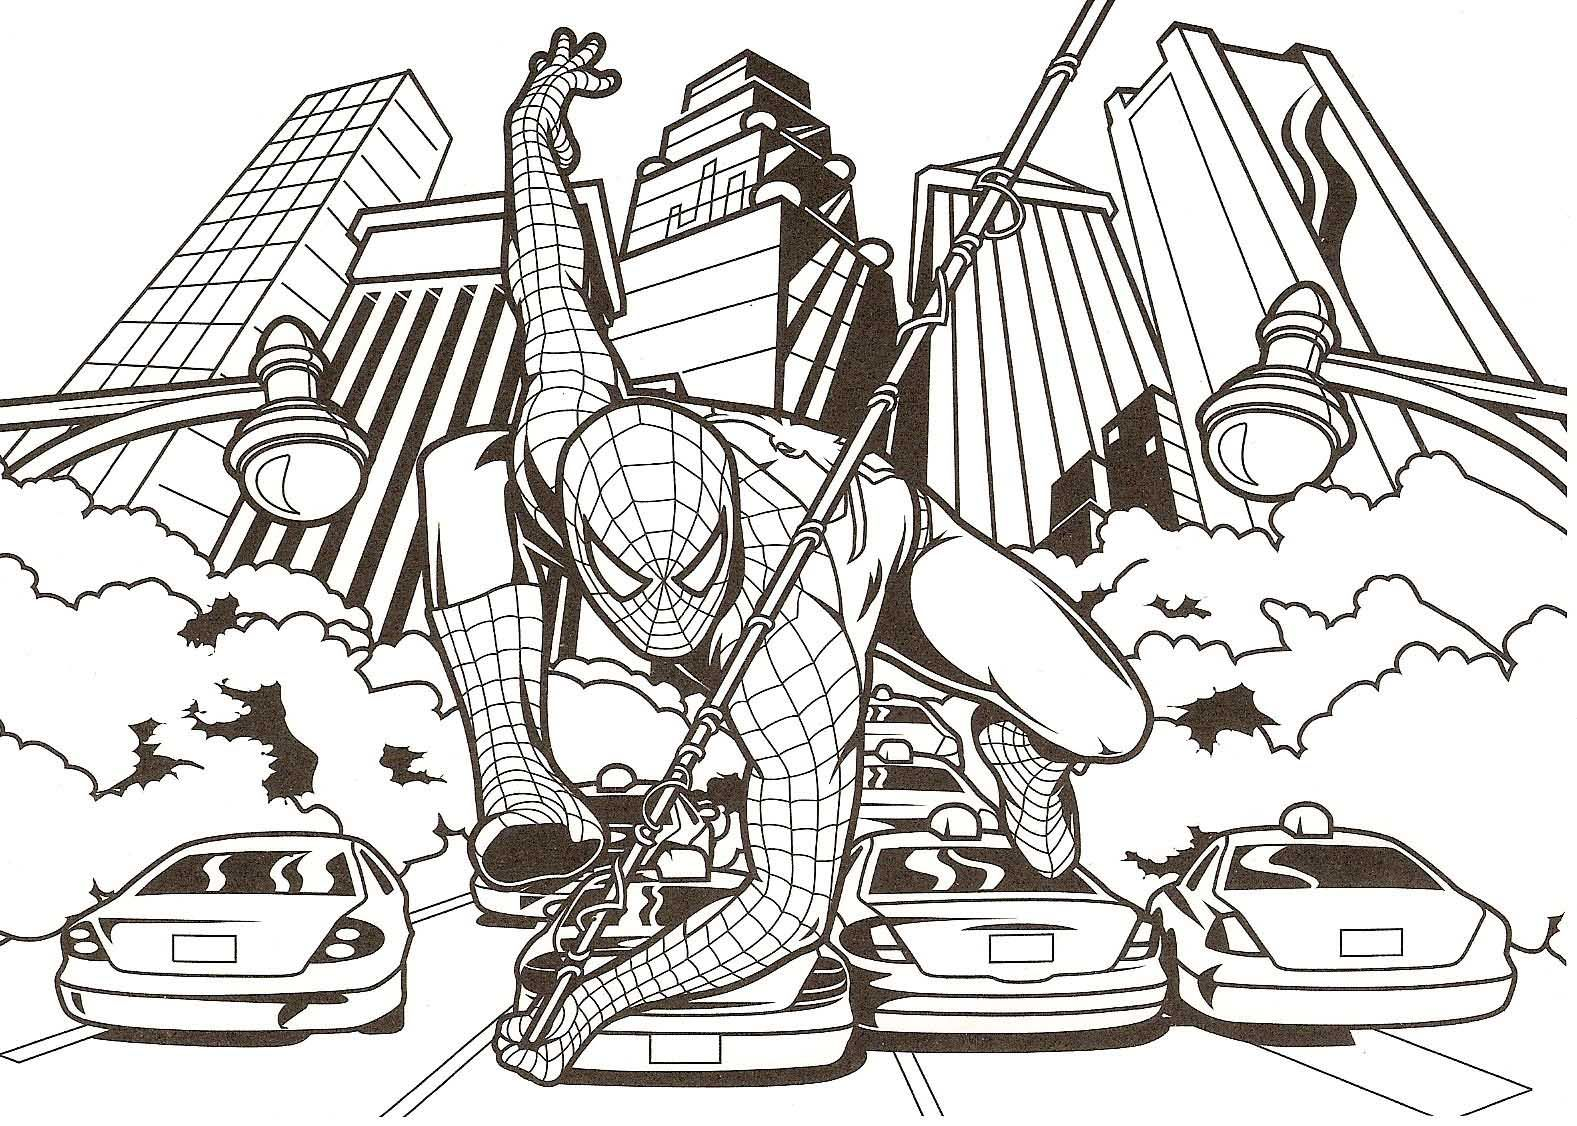 Childrens coloring games online - Amazing Spiderman Coloring Pages Printable And Coloring Book To Print For Free Find More Coloring Pages Online For Kids And Adults Of Amazing Spiderman